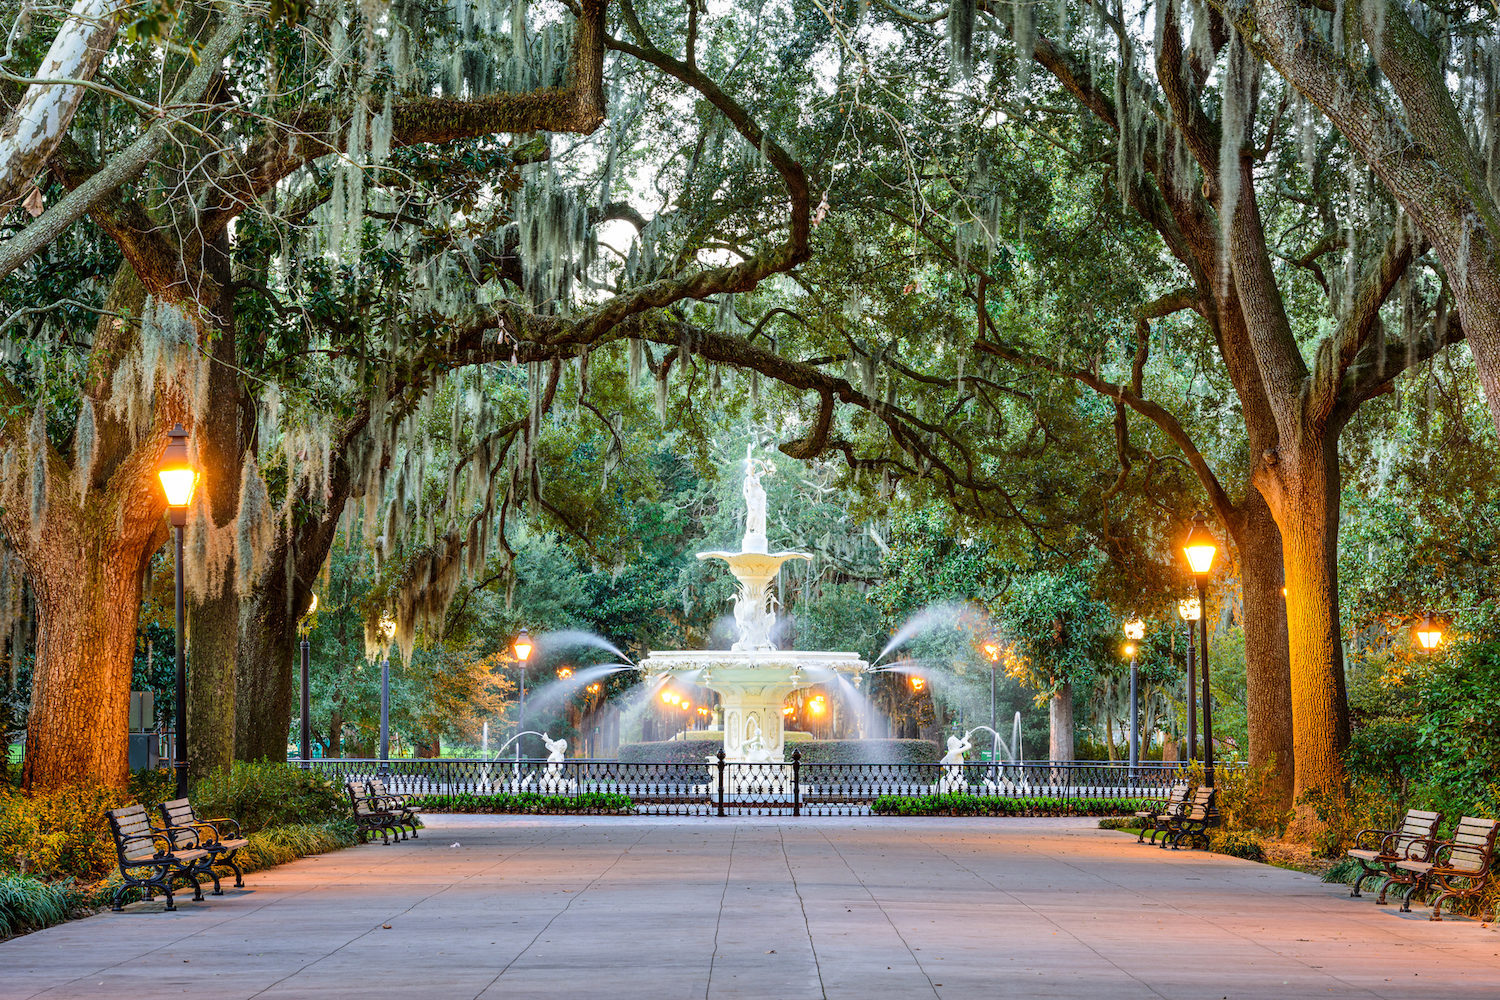 Iconic fountain in Forsyth Park